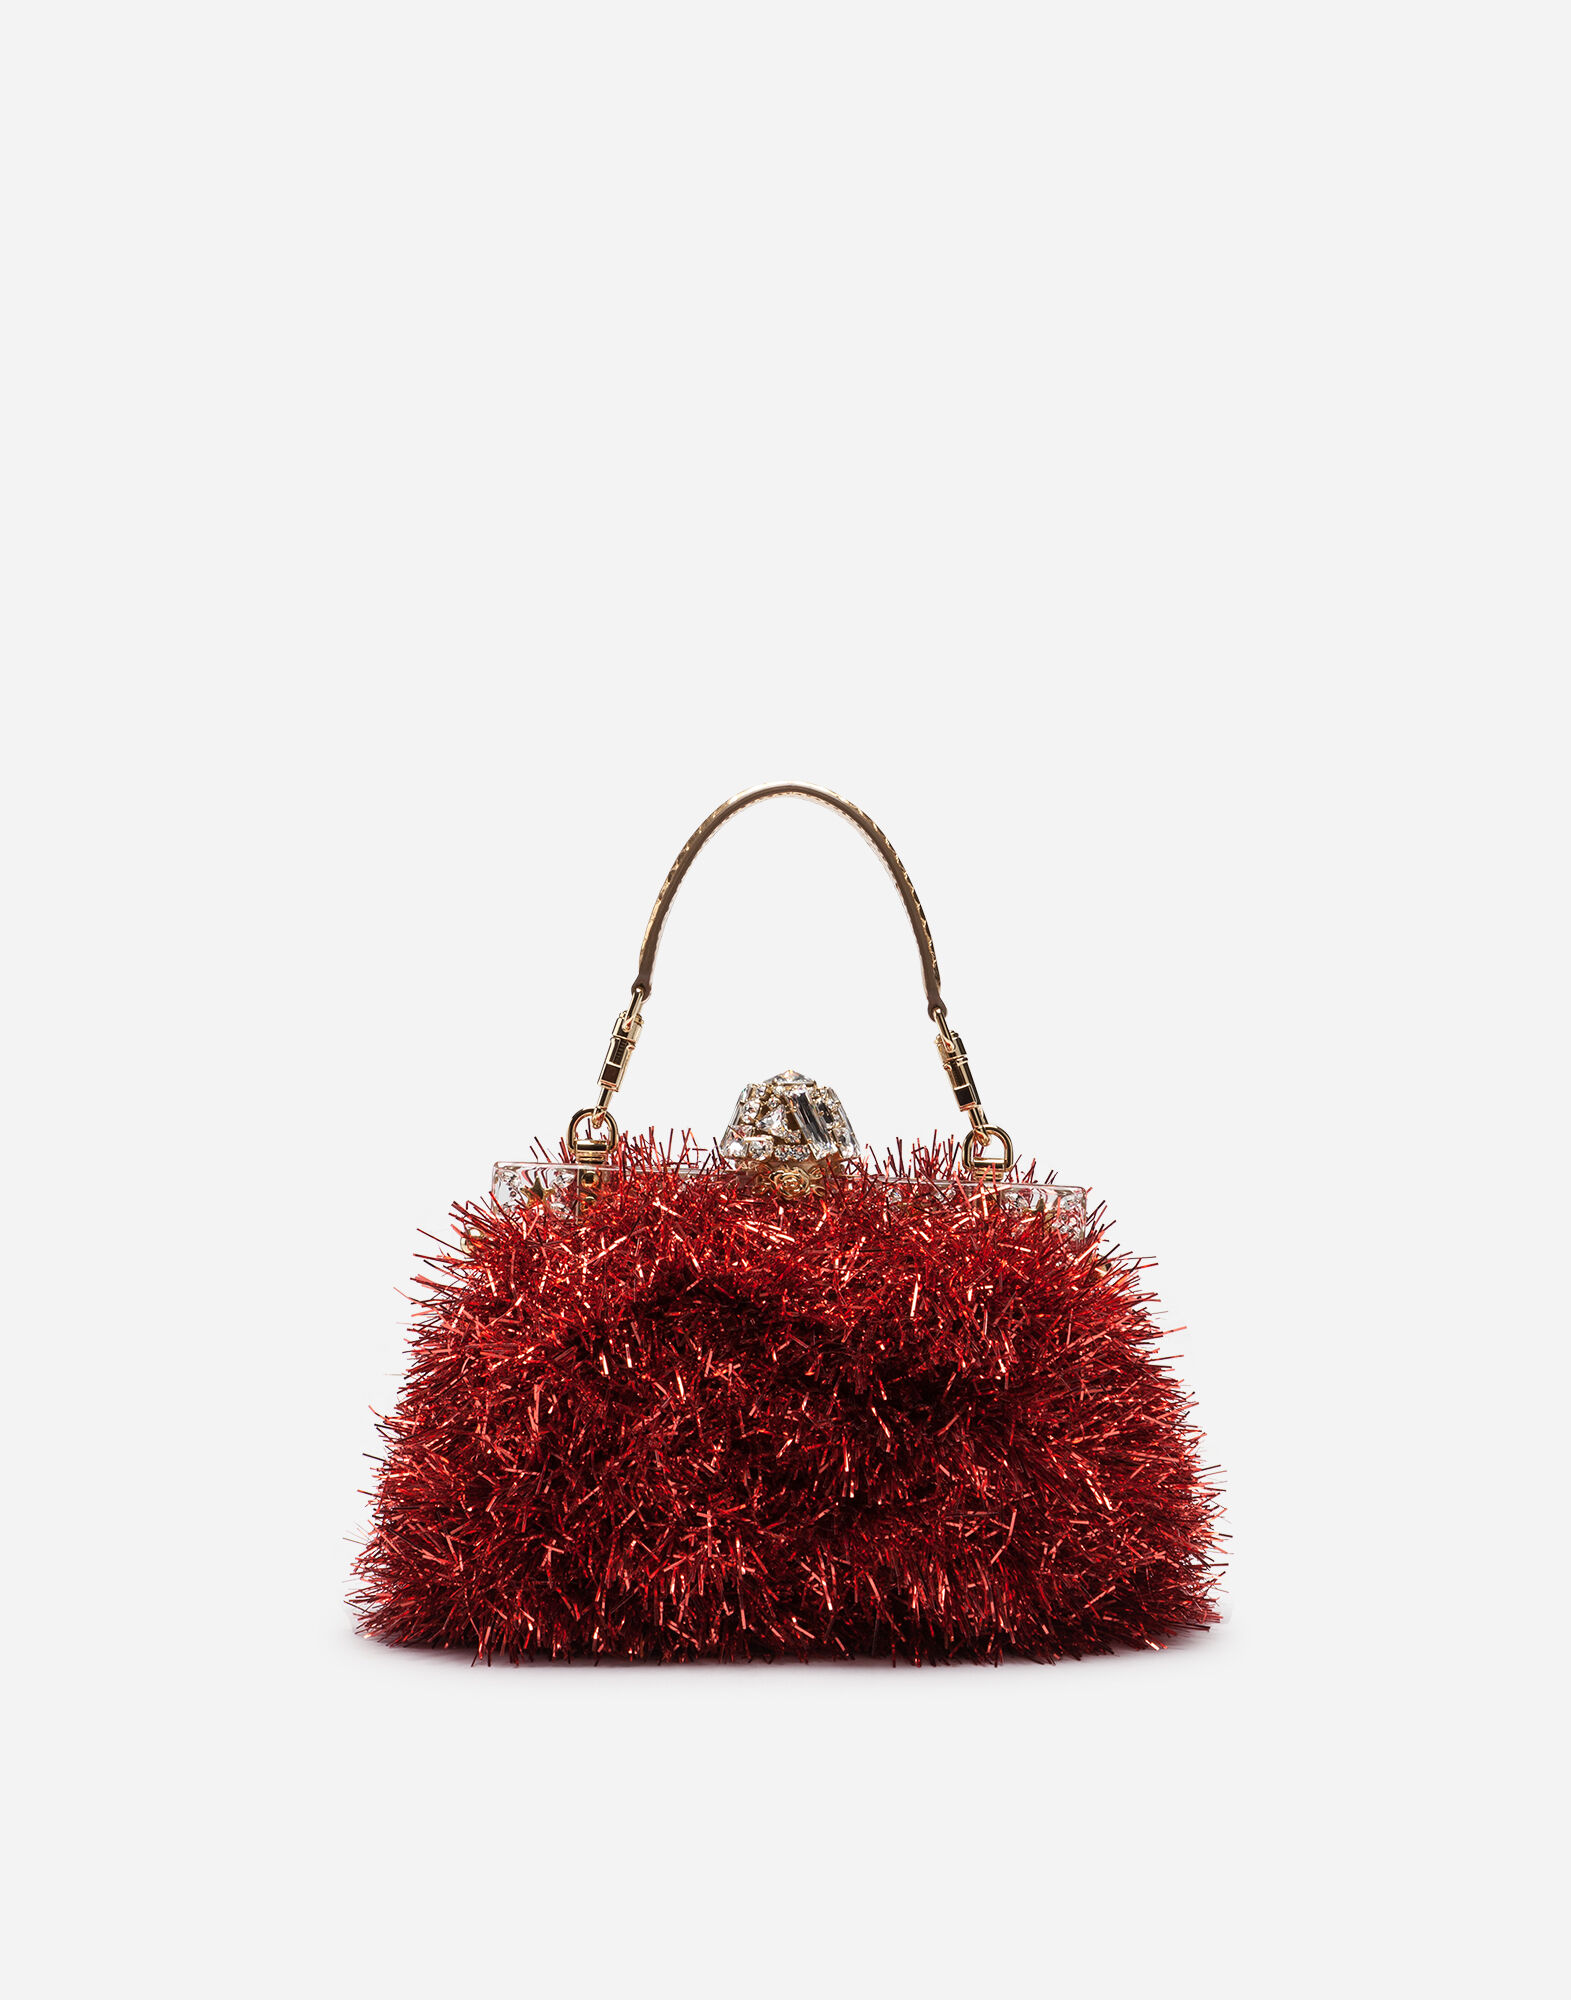 Satin Vanda Handbag With Embroidery in Red